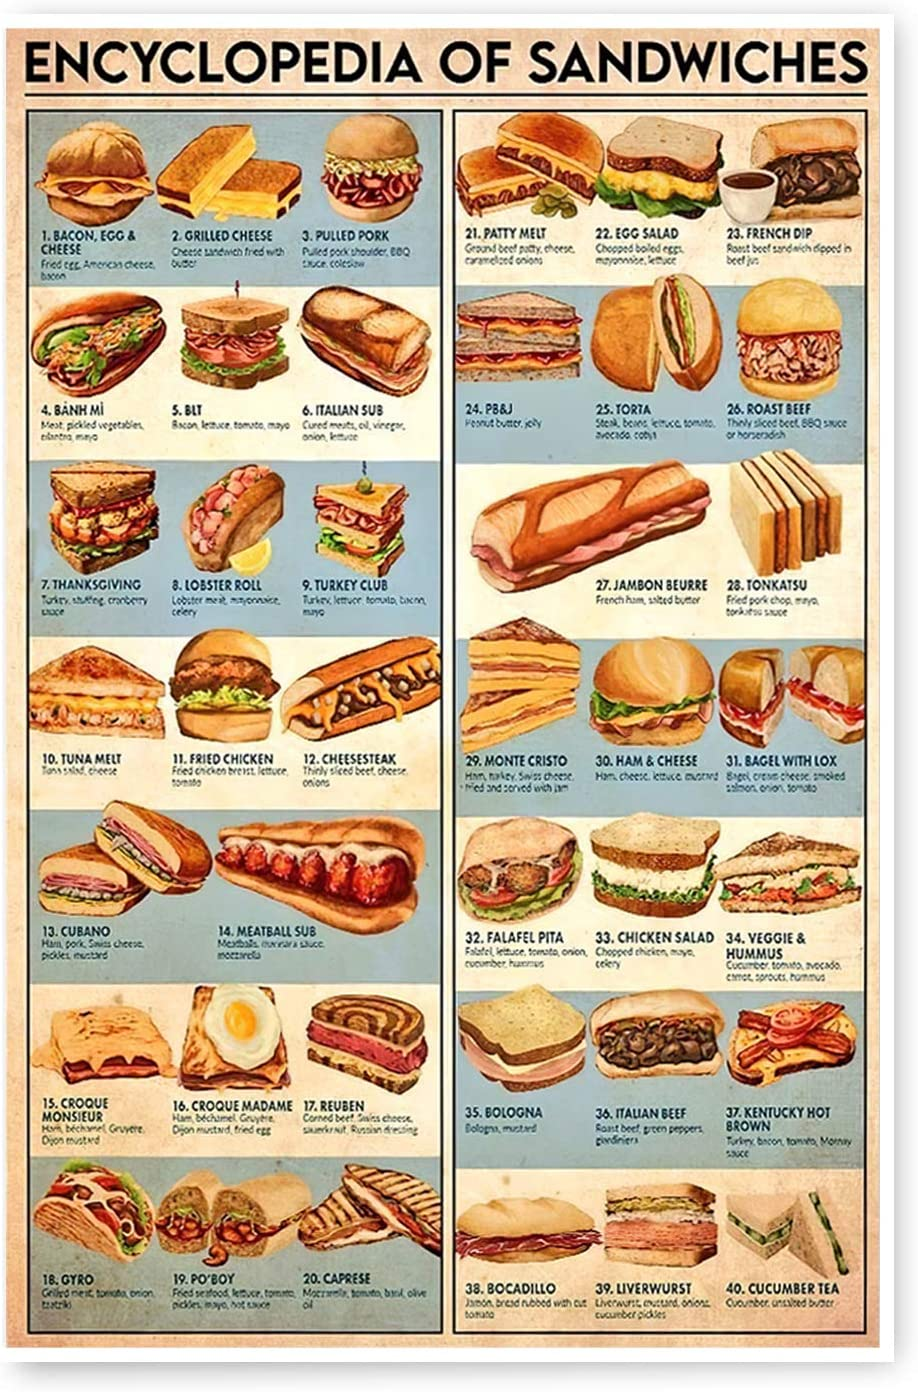 DesDirect Store Encyclopedia of Sandwiches Tasty Food Vintage Poster - Funny Bathroom Print Poster White - Satin Portrait Poster Wall Art Home 16